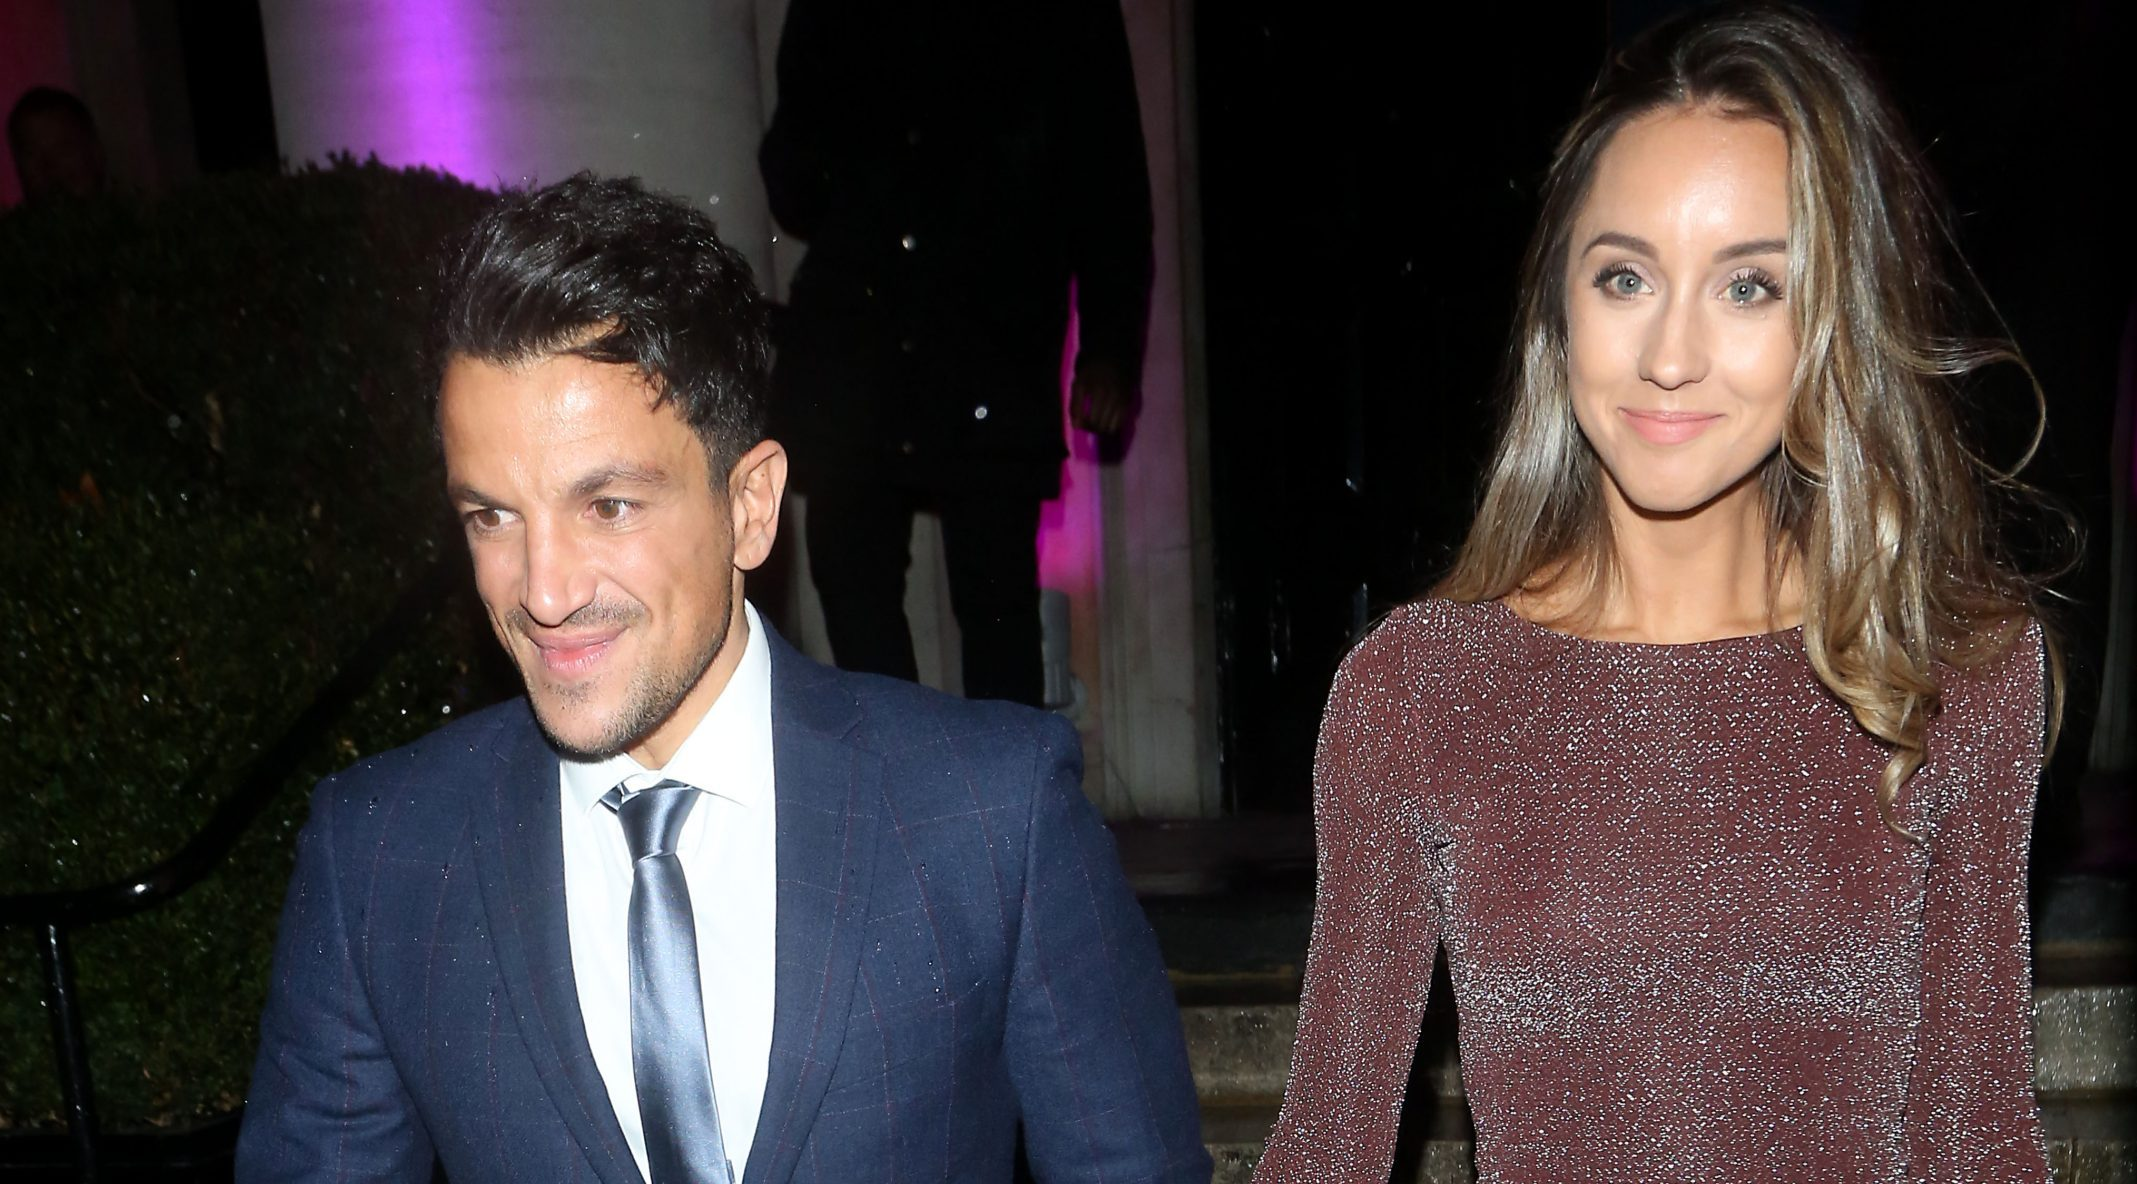 Peter Andre admits he and wife Emily might move to Australia